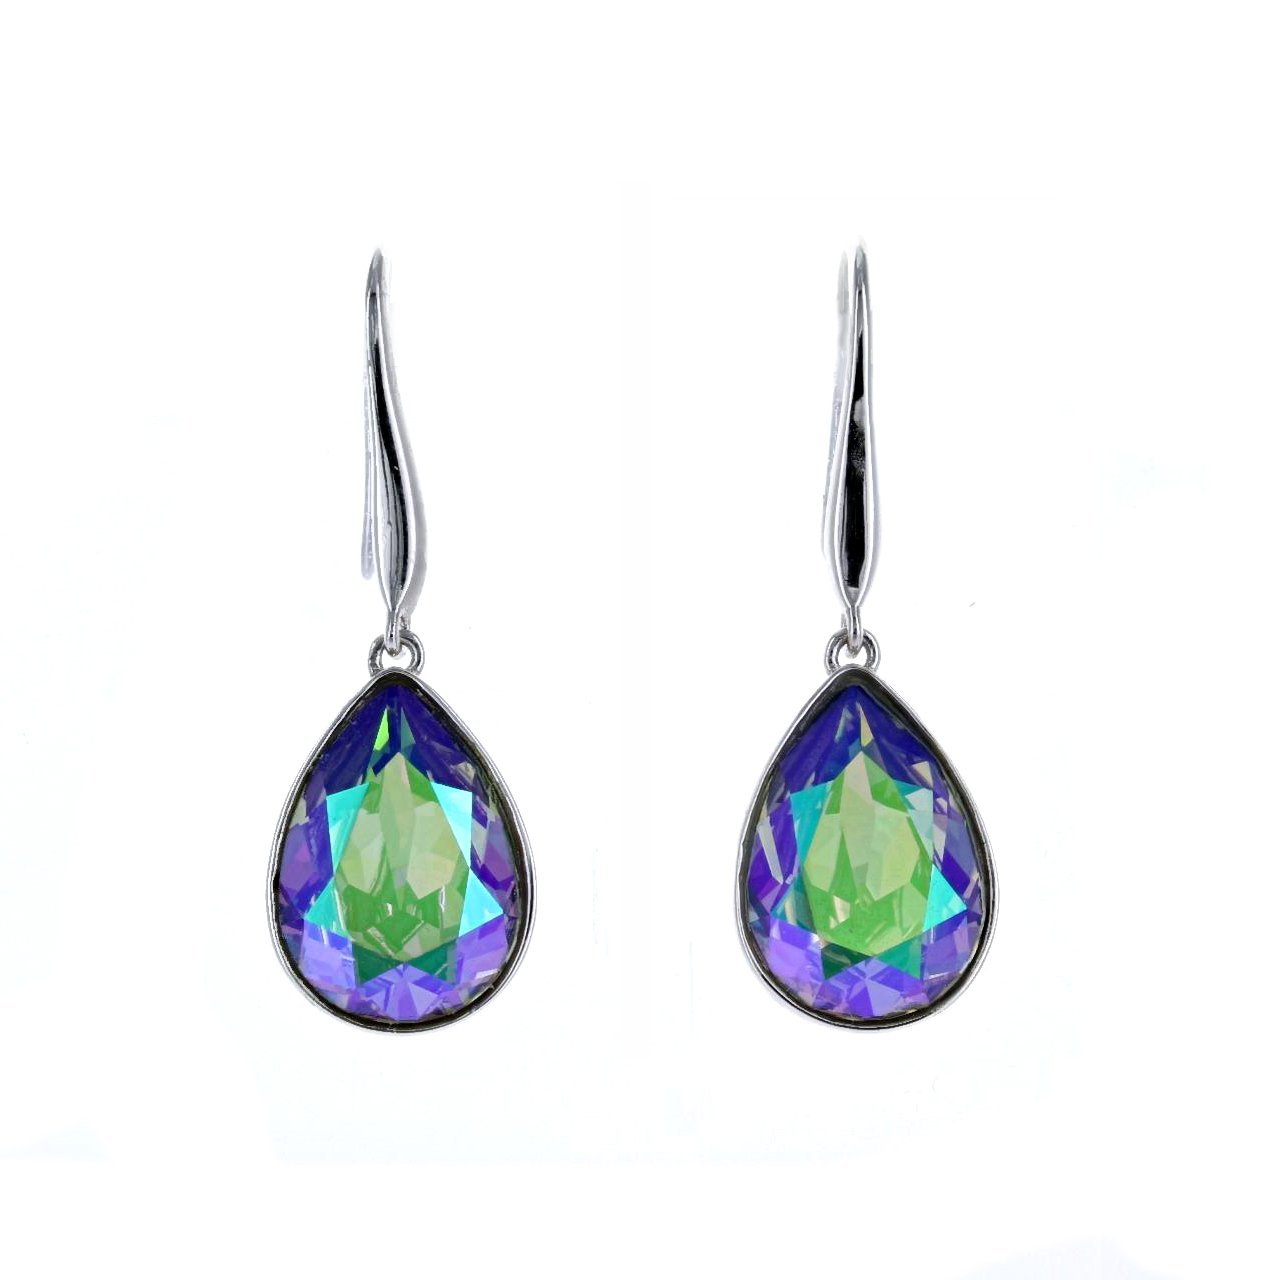 Swarovski Crystal Paradise Shine Teardrop Earrings